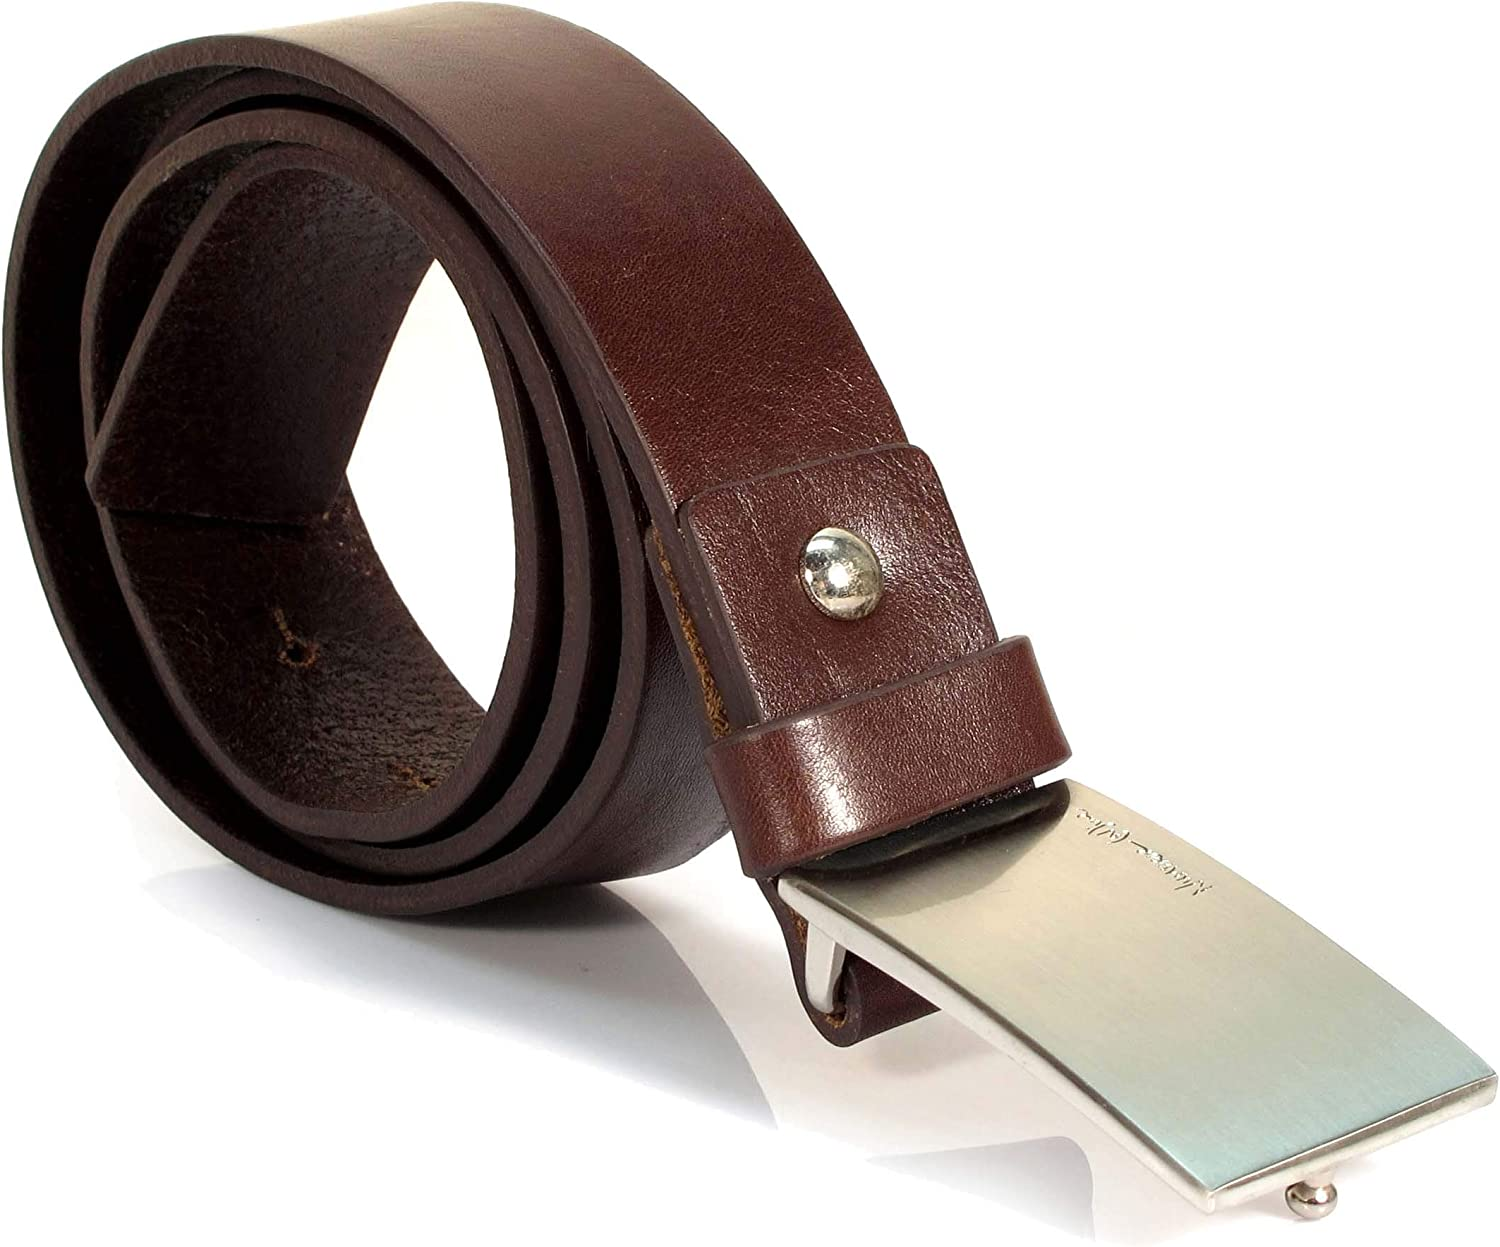 Mens Real Genuine Leather Belt Black Brown White 1.25 Wide S-L Casual Jeans TM1